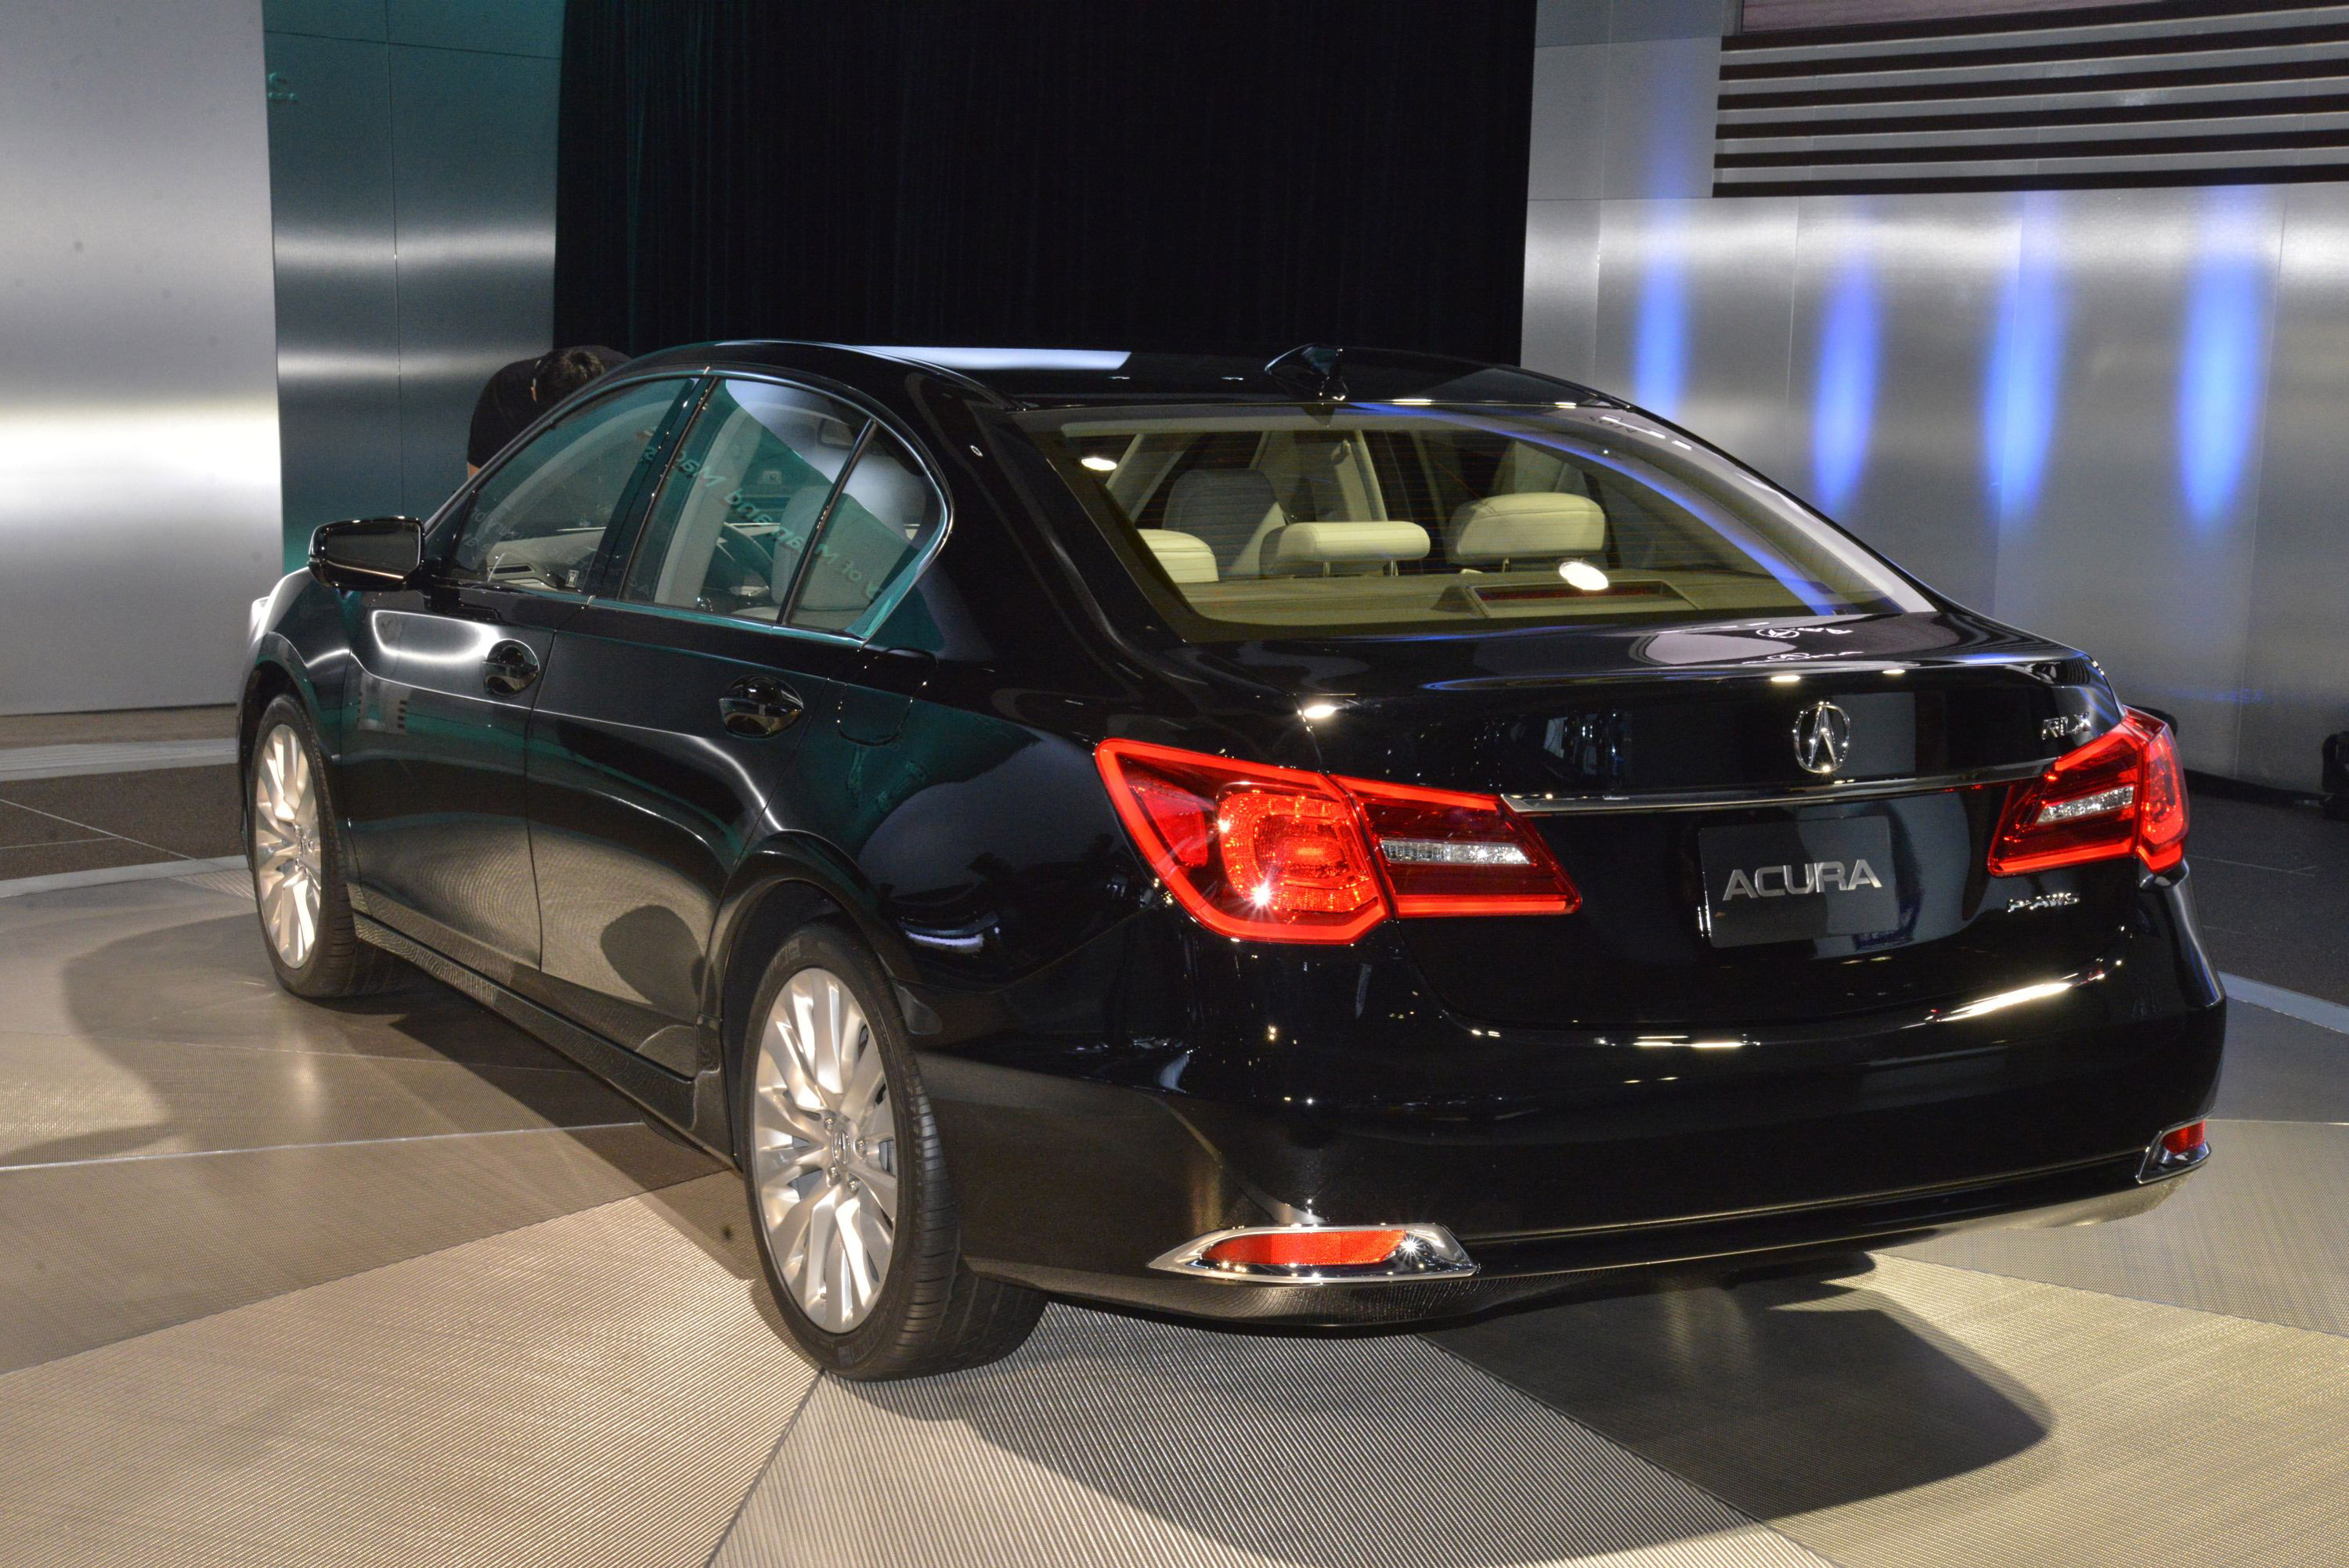 acura rlx los angeles 2012 picture 77990